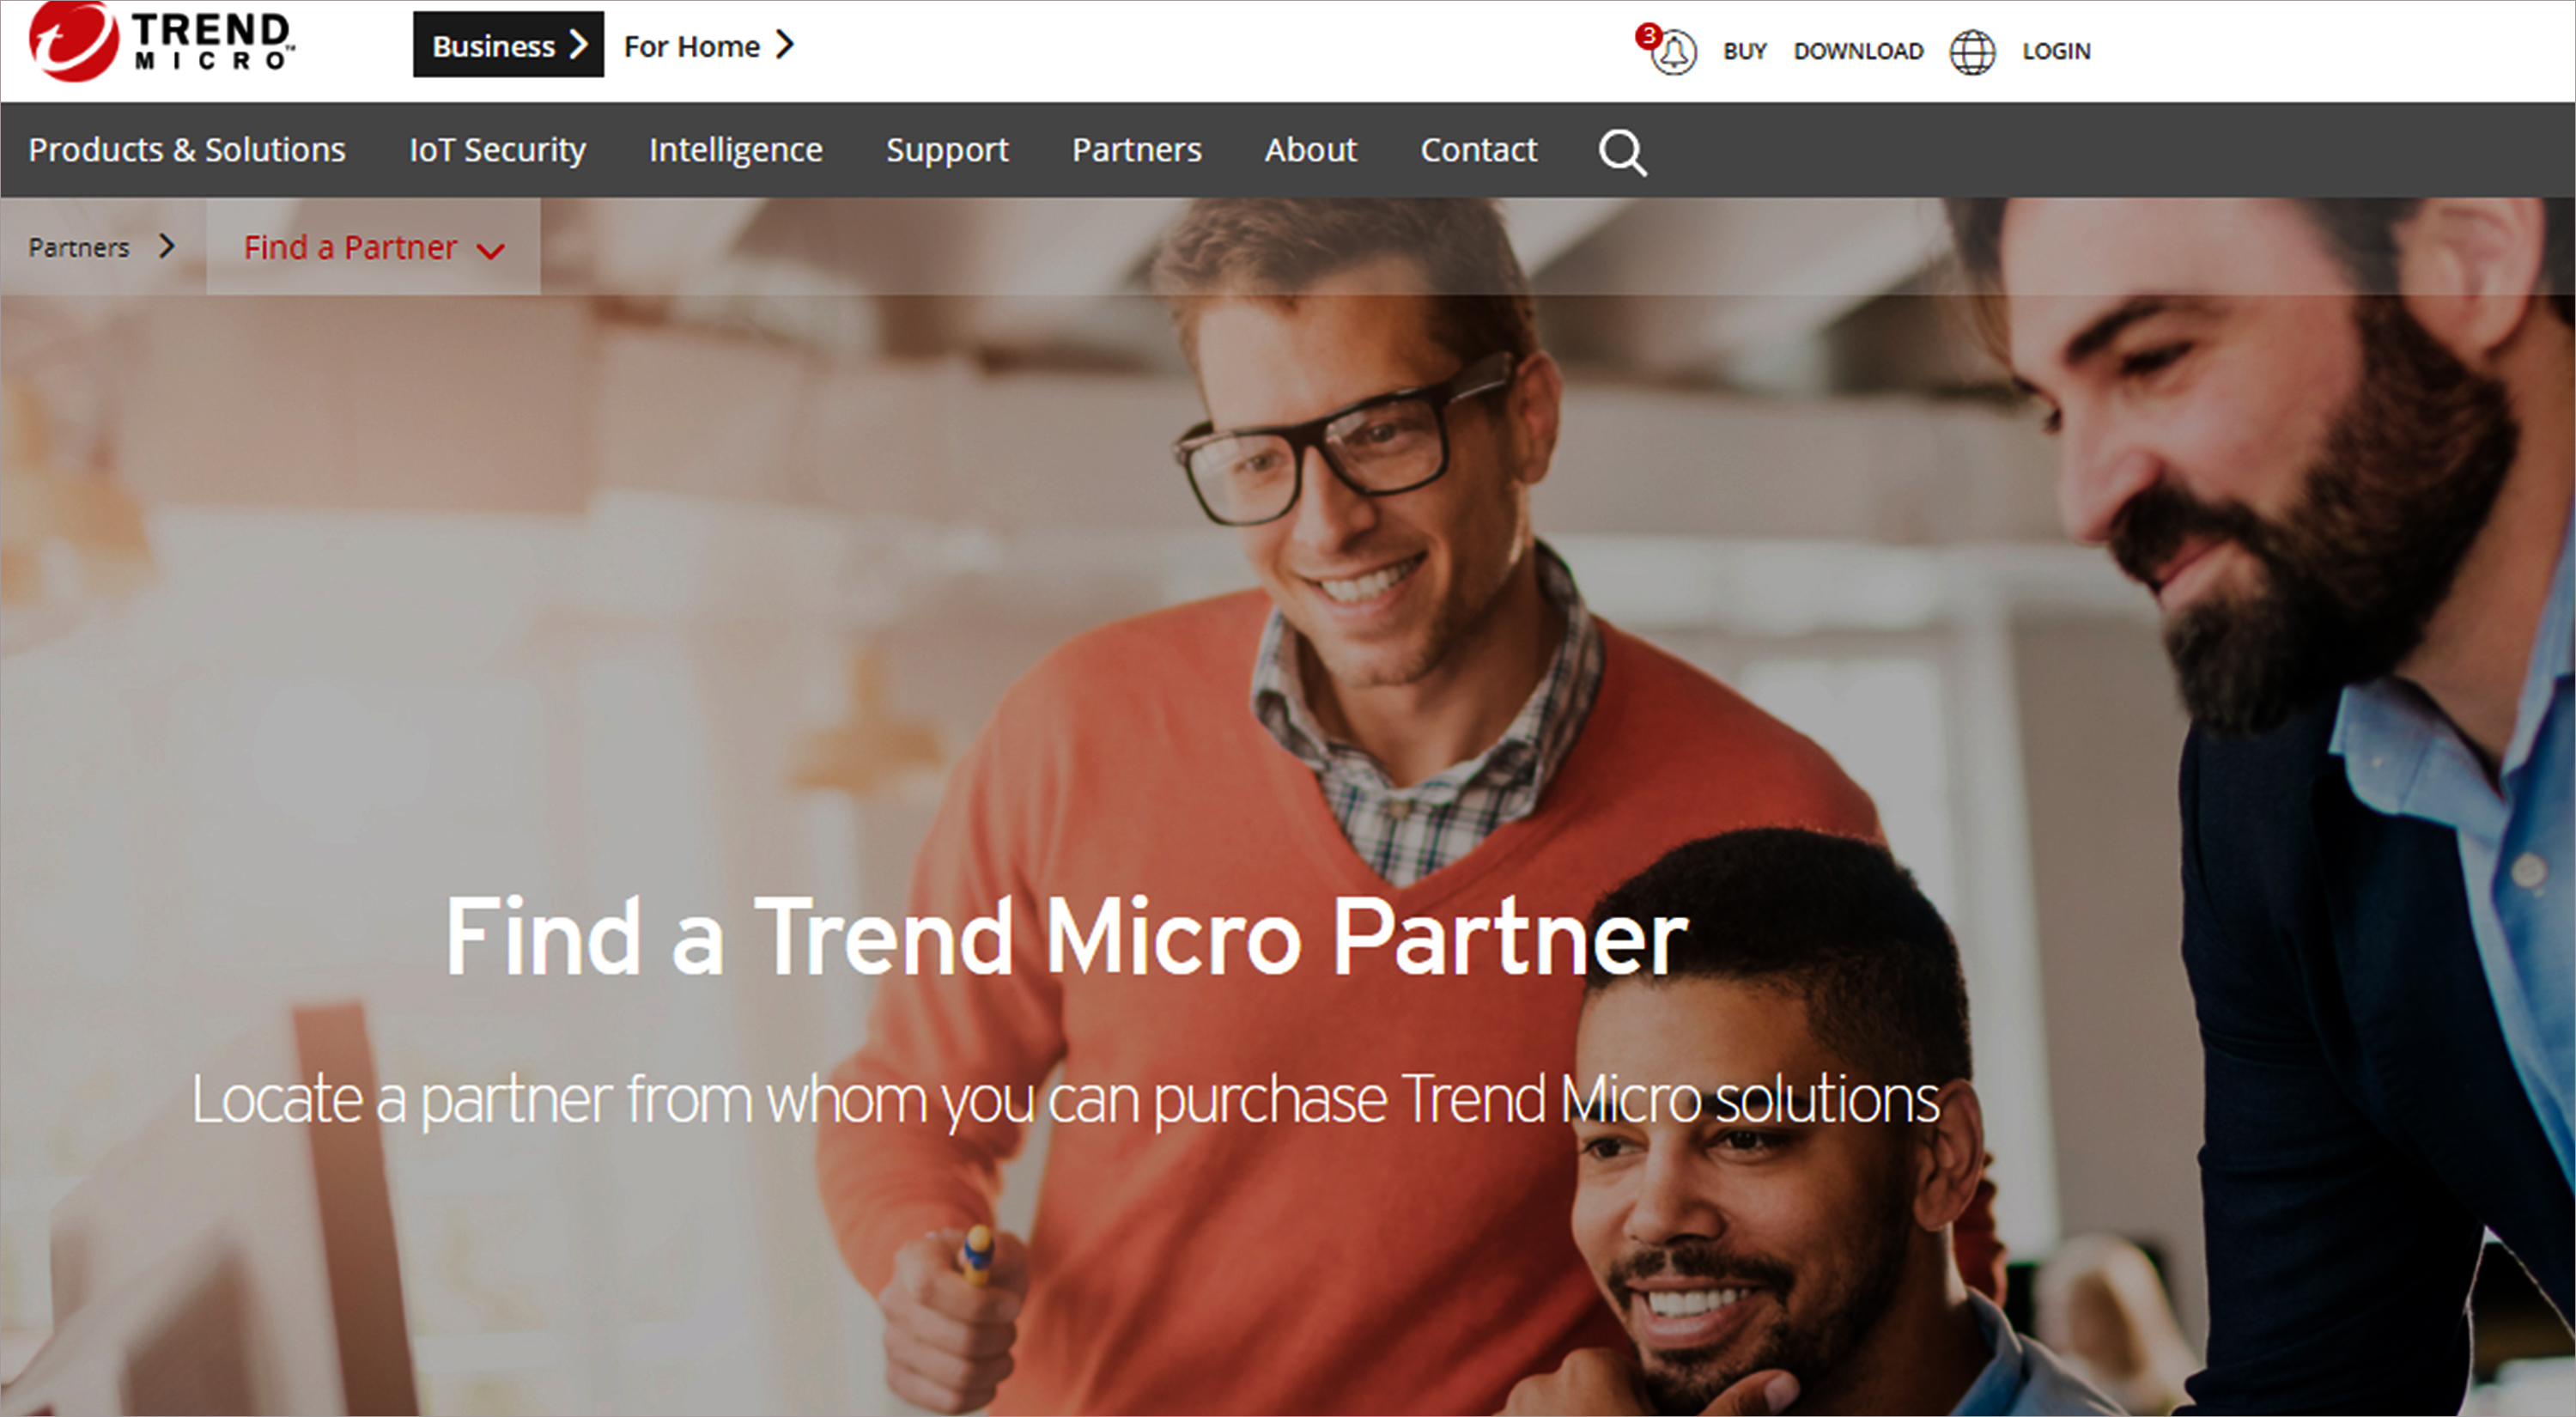 Latest Trend Micro partner programme enables managed services, specialisations